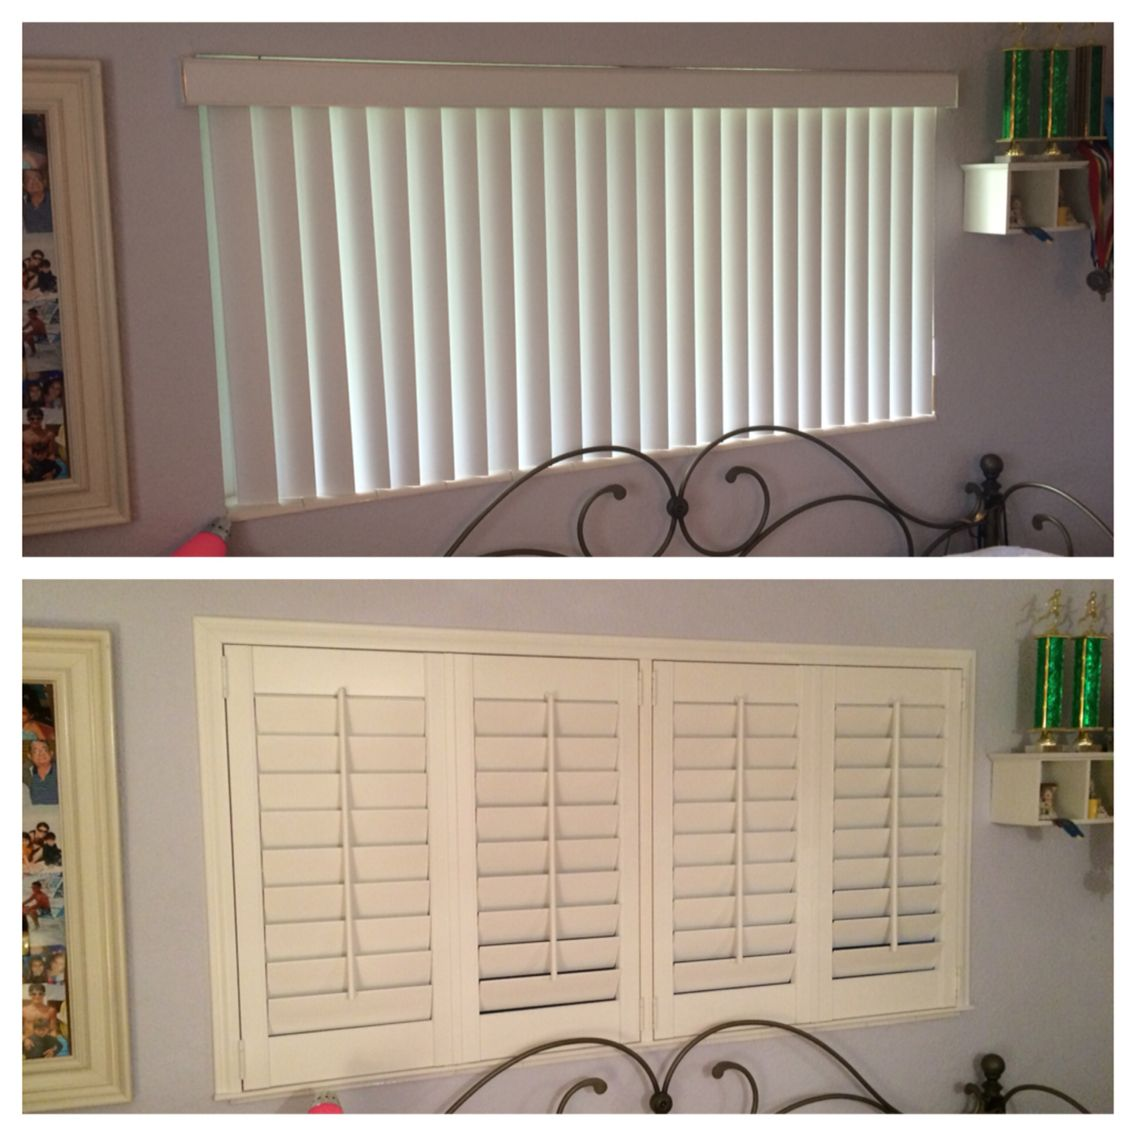 shutters vinyl blinds decorating faux depot levolor target com home ideas shutter wood window lowes stylish covering low indoor for astonishing plantation